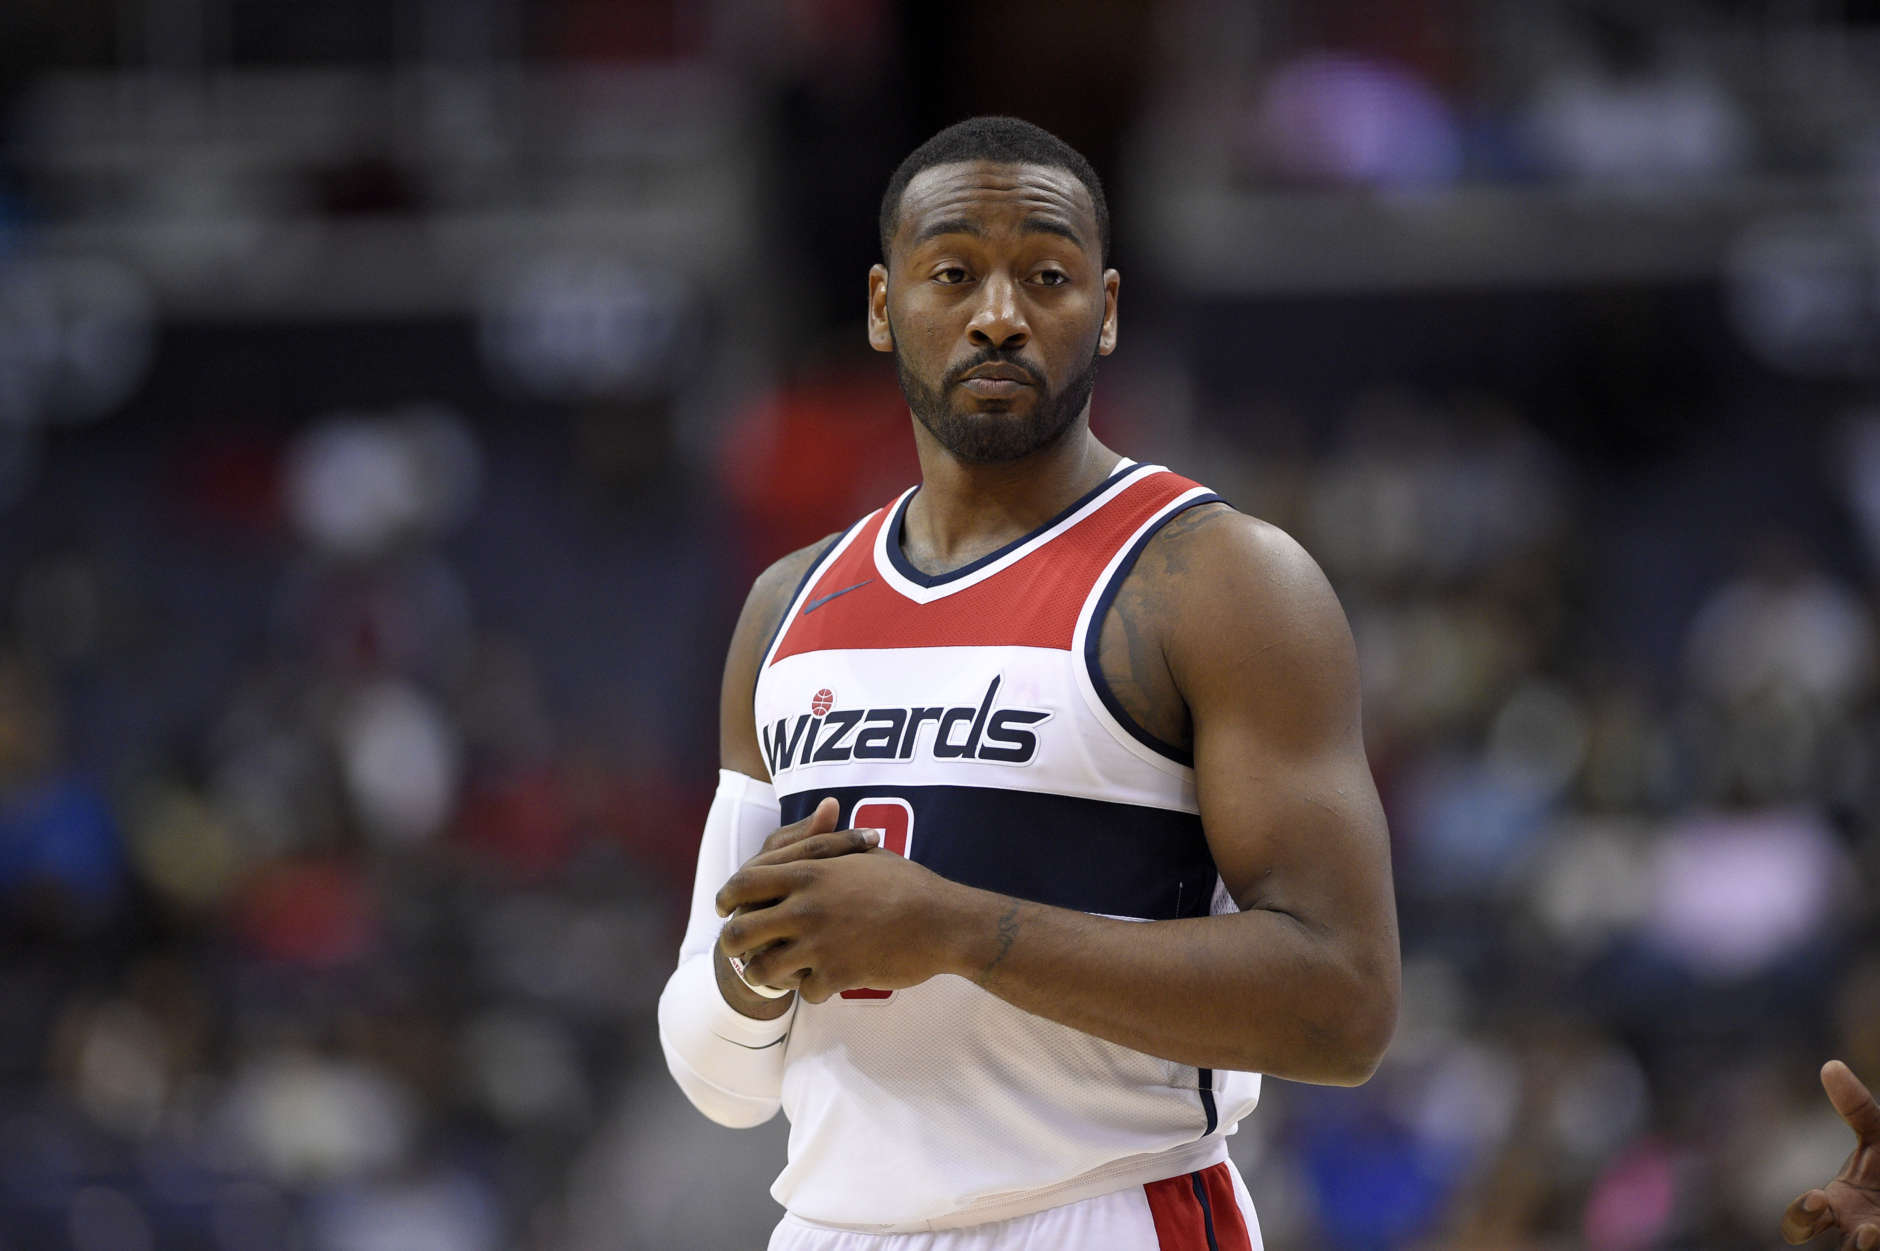 newest collection c9eee 97854 Wizards to go without guard John Wall after sustained knee ...